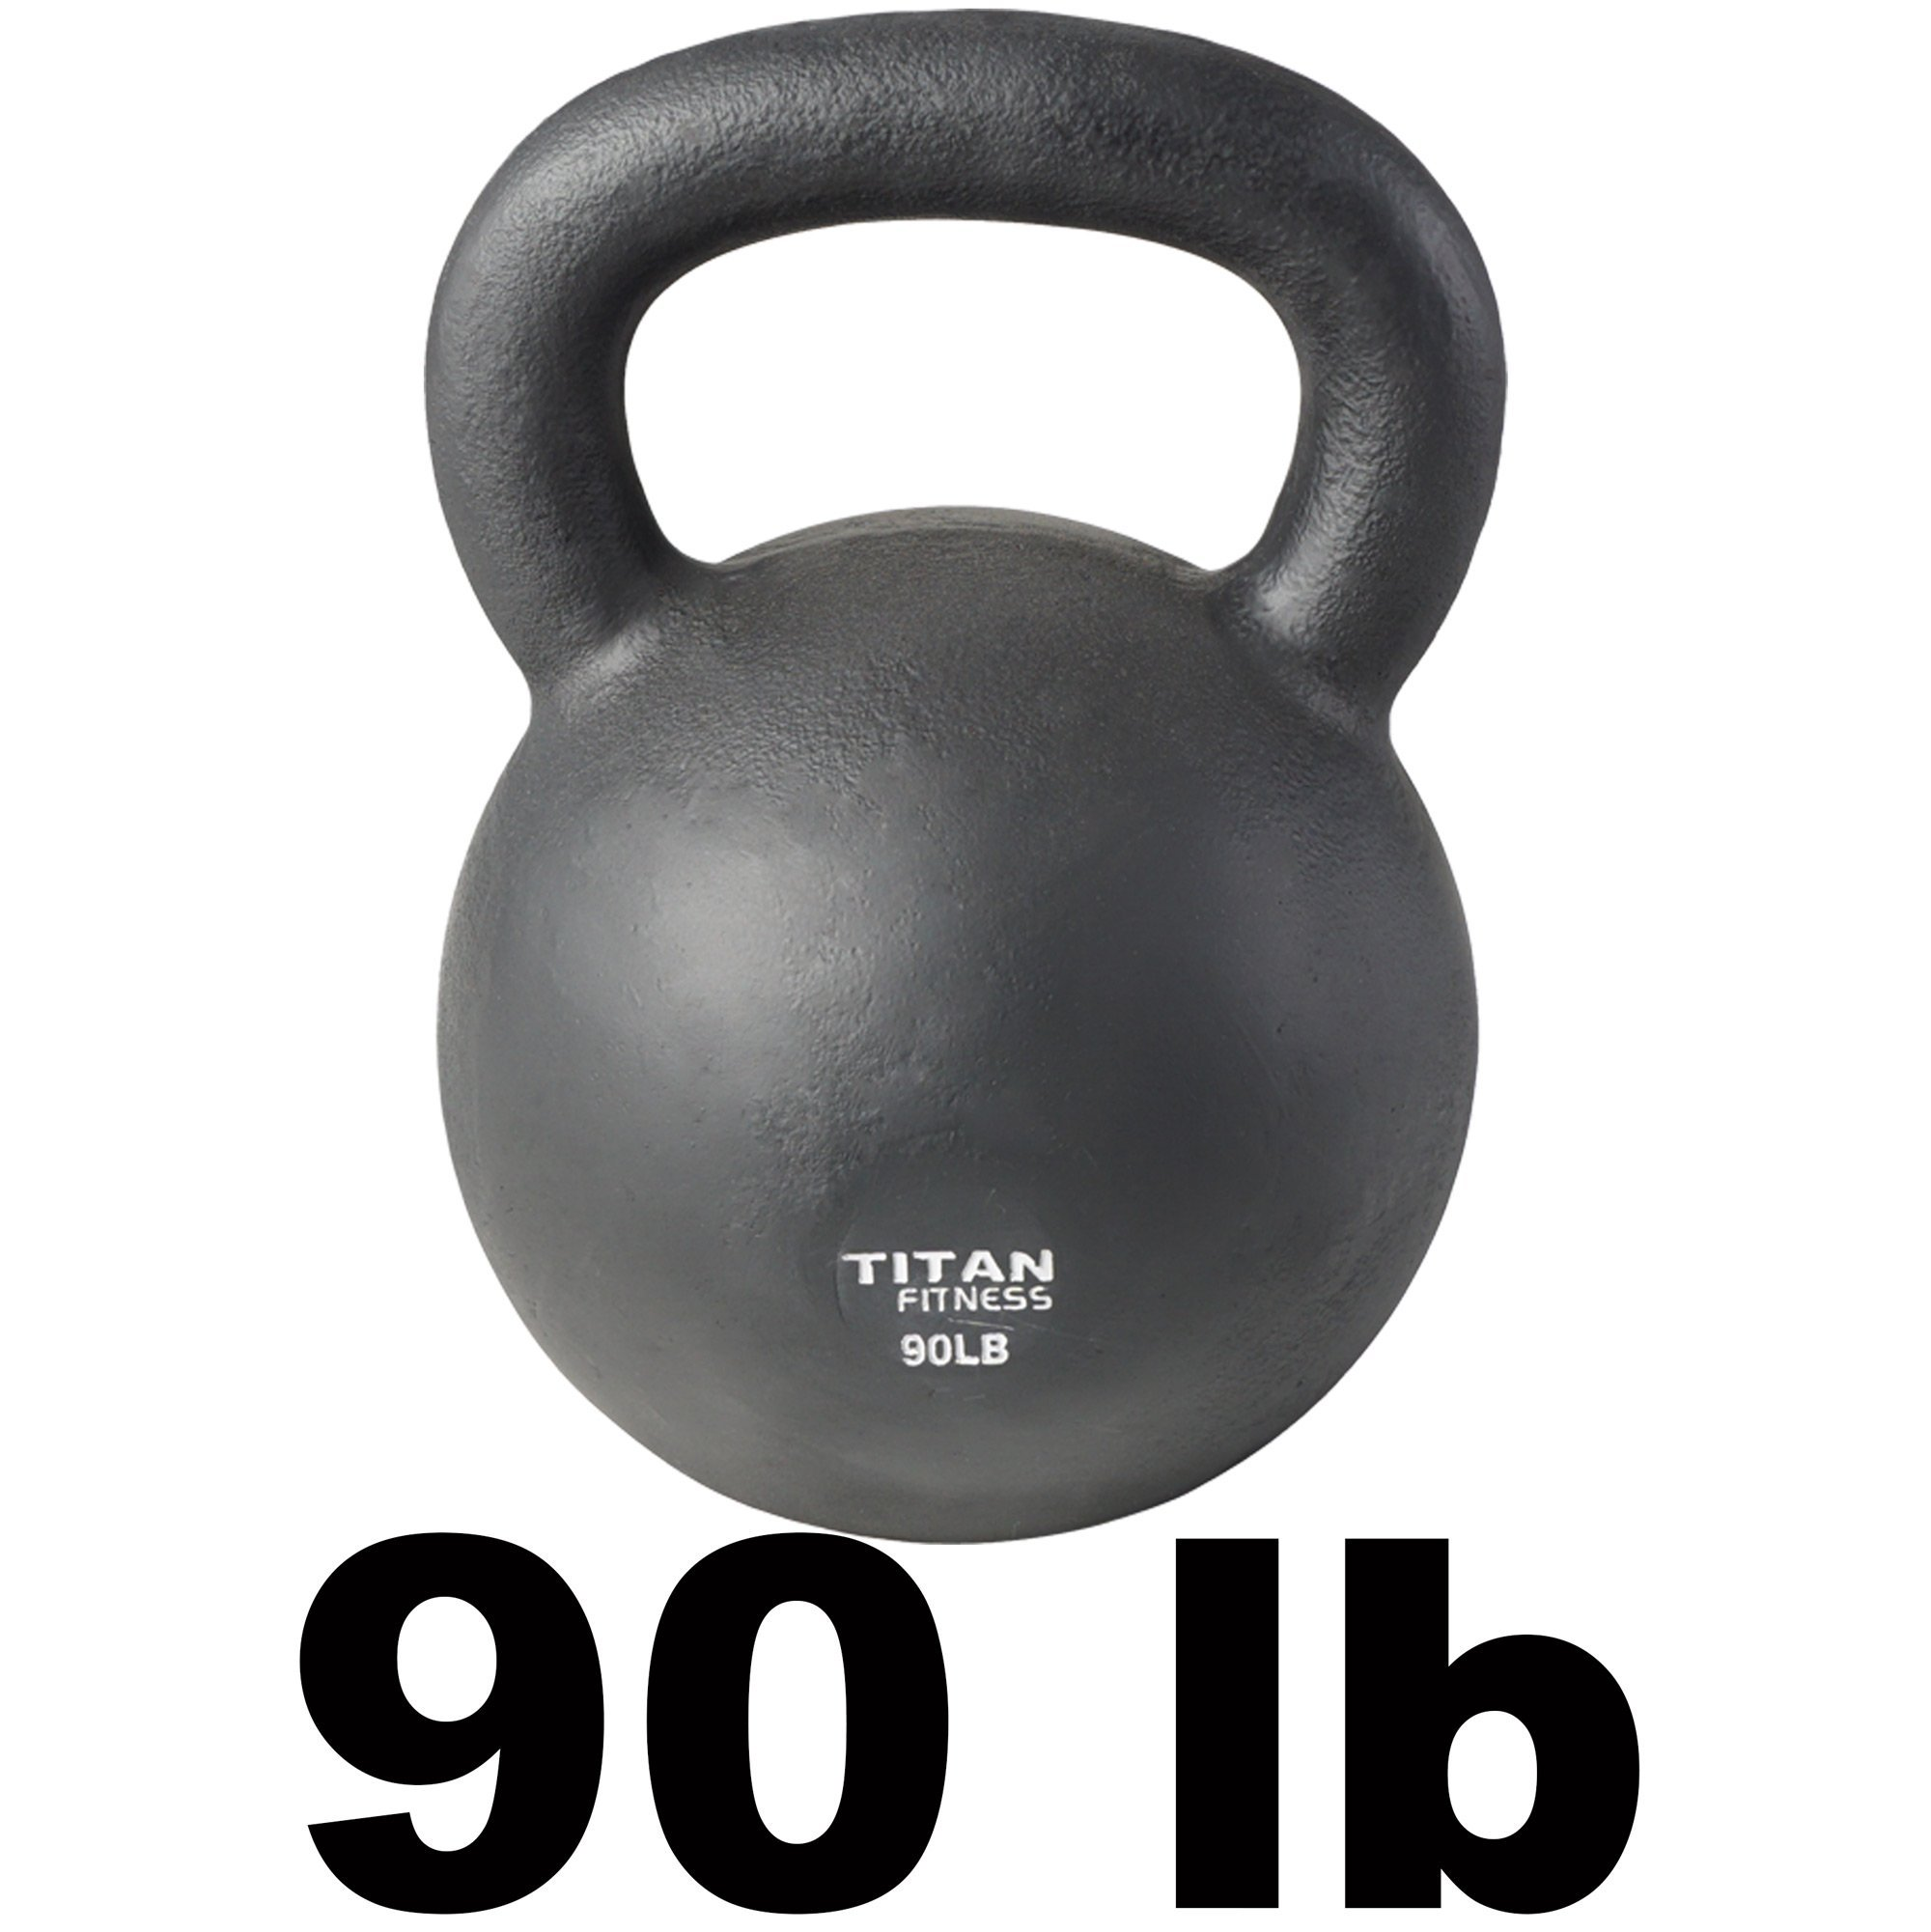 Cast Iron Kettlebell Weight 90 lb Natural Solid Titan Fitness Workout Swing by Titan Fitness (Image #7)